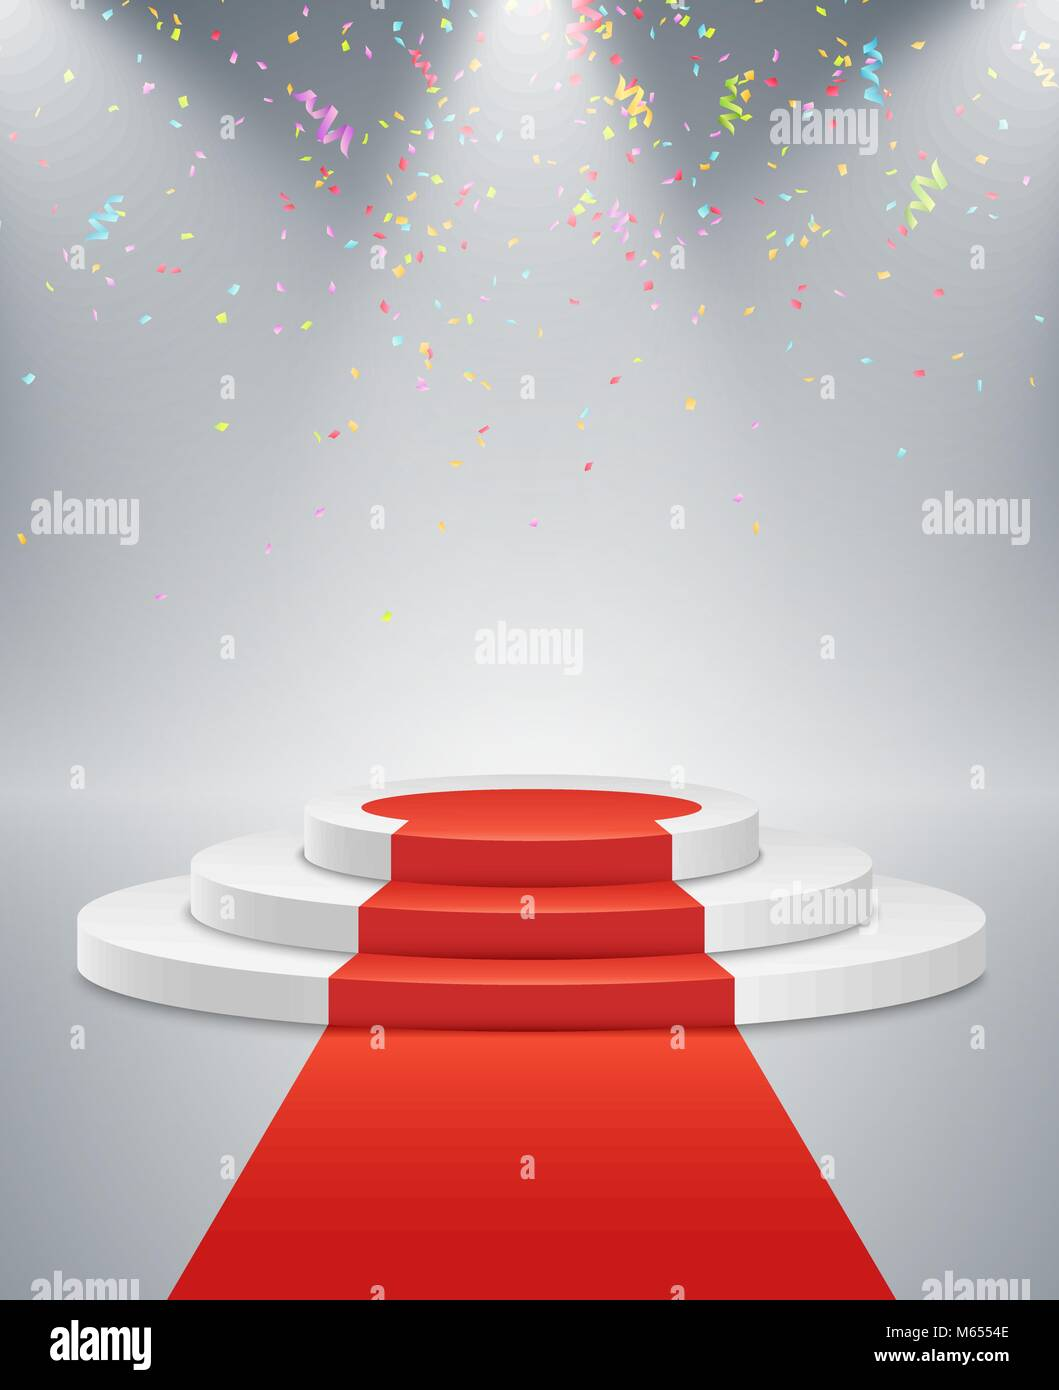 White Podium And Red Road On A Light Background. The Winner Is In First  Place. Bright White Light From Searchlights. Flying Confetti. Light  Pedestal.